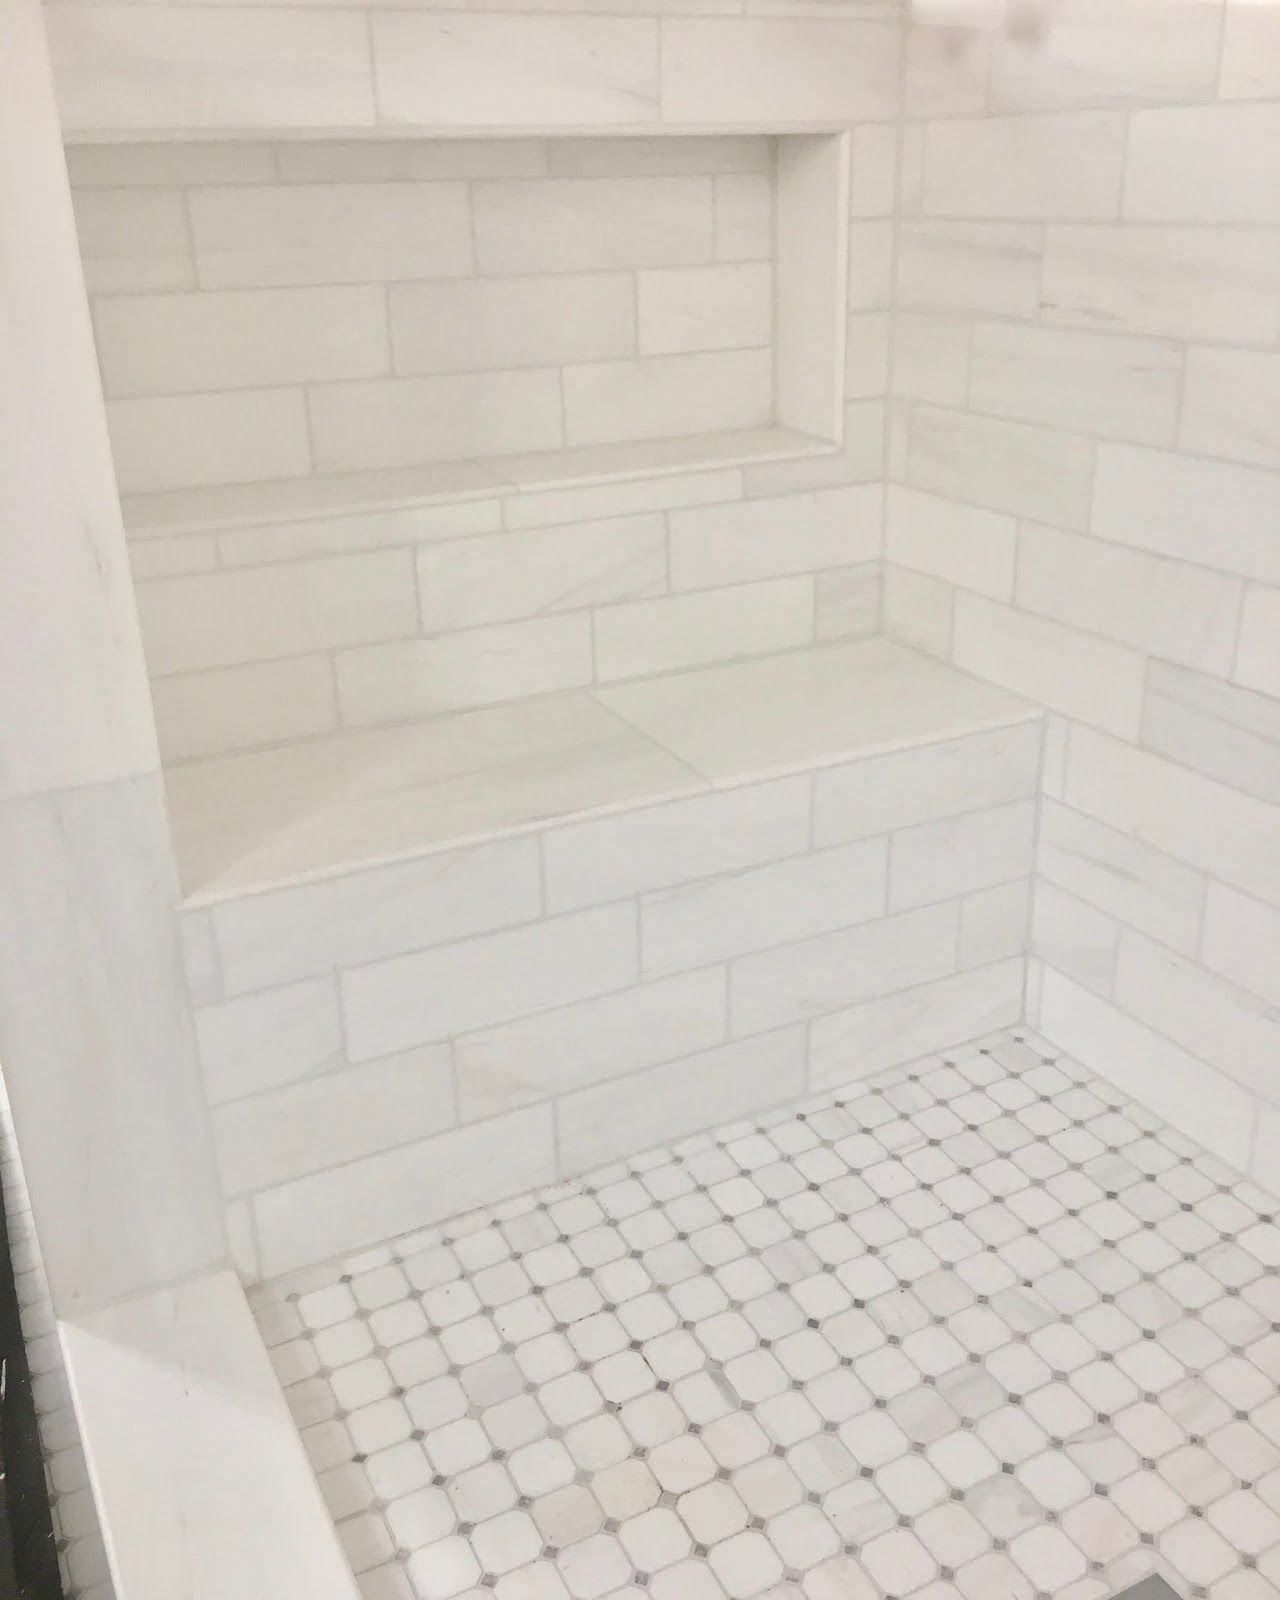 Home Build Series Volume 1 With Images Bathroom Remodel